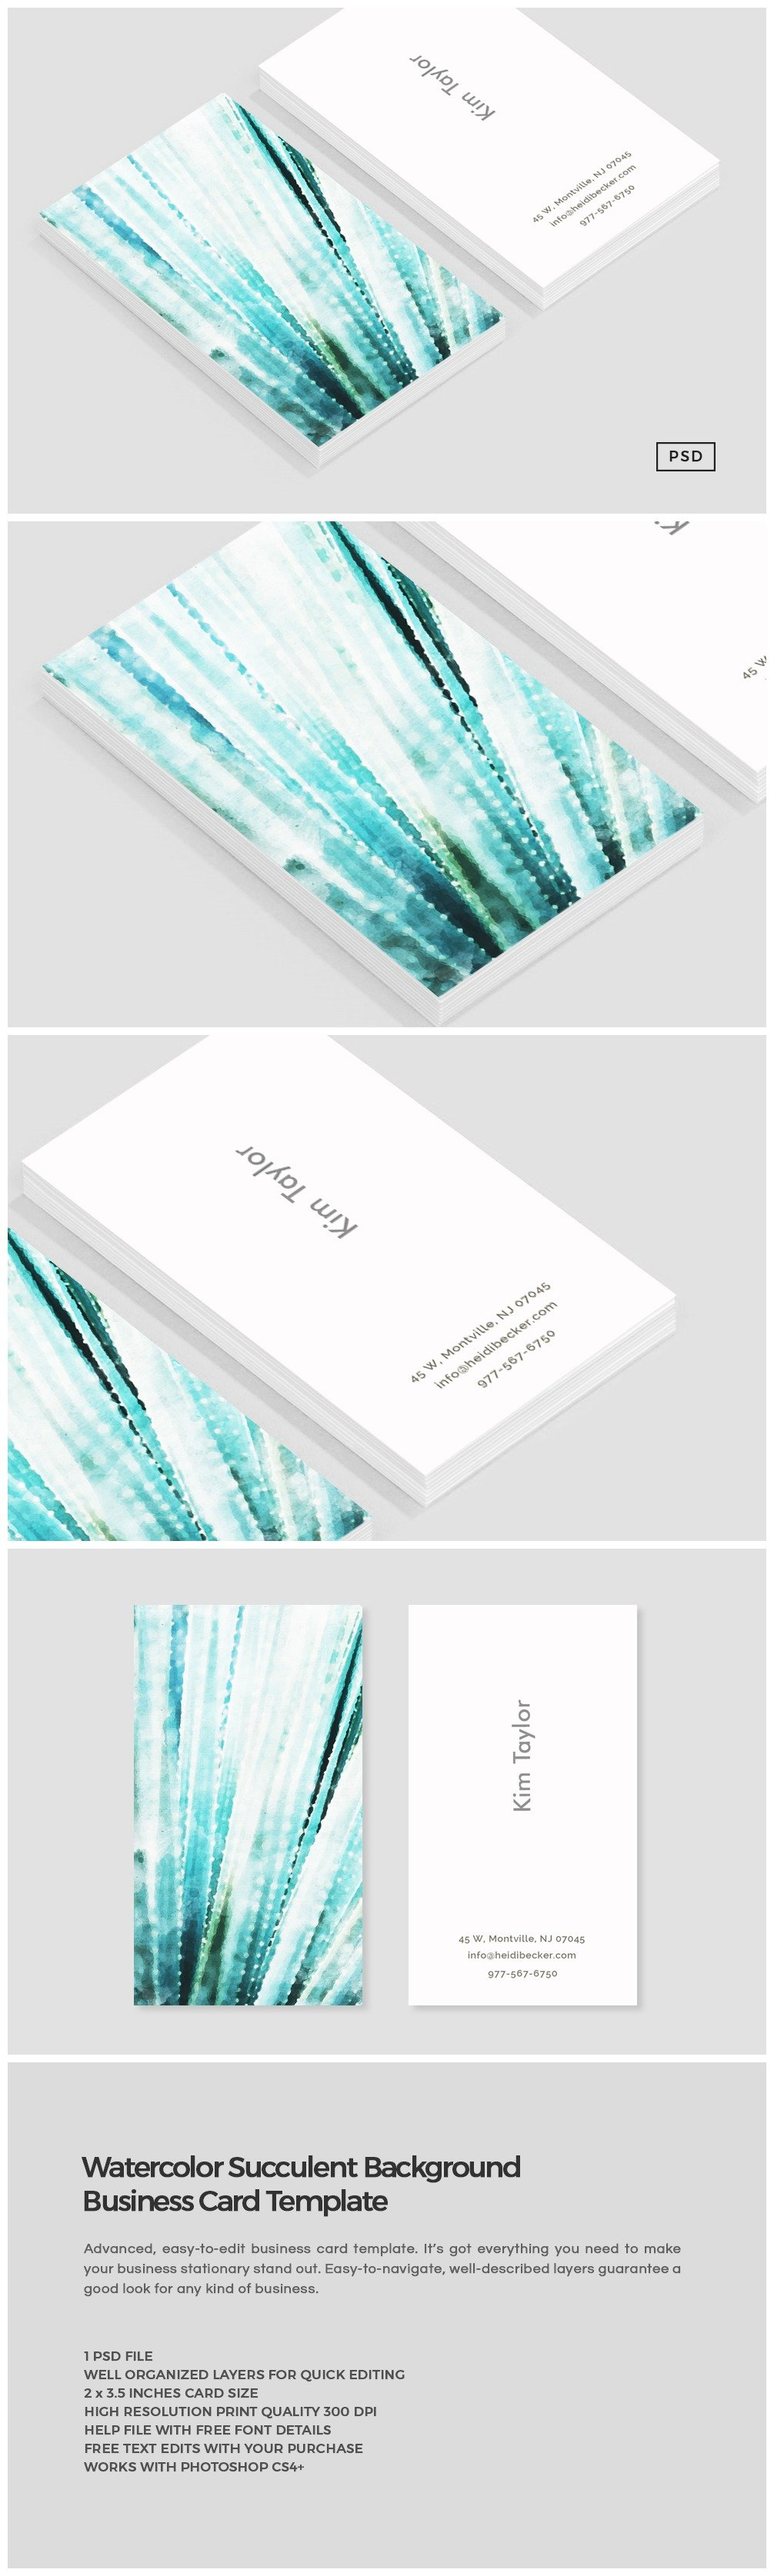 Watercolor succulent business card business card templates watercolor succulent business card business card templates creative market reheart Gallery